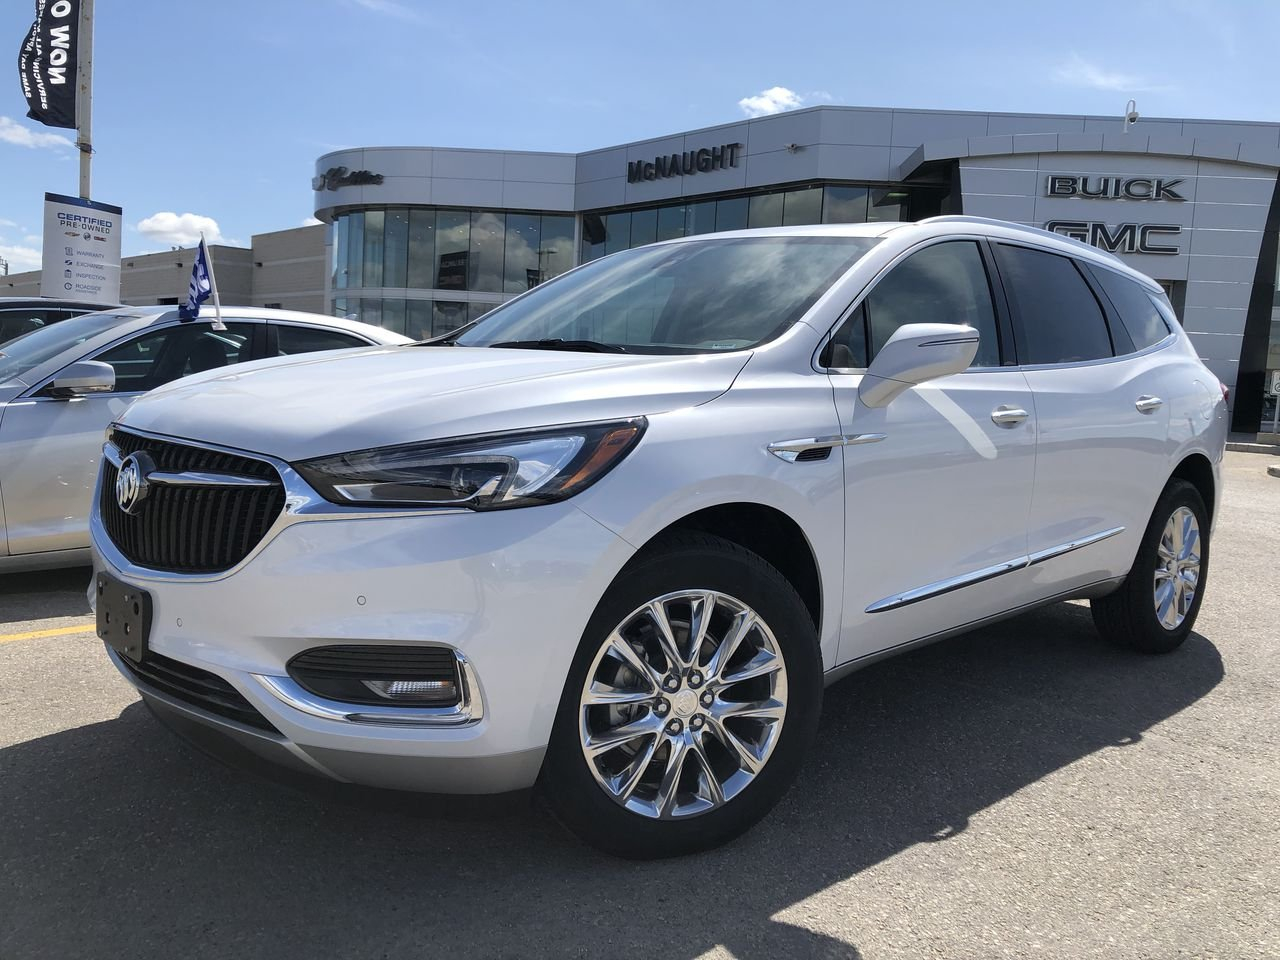 New 2020 Buick Enclave Premium New 2022 Buick Enclave Manual, Maintenance Schedule, Mileage